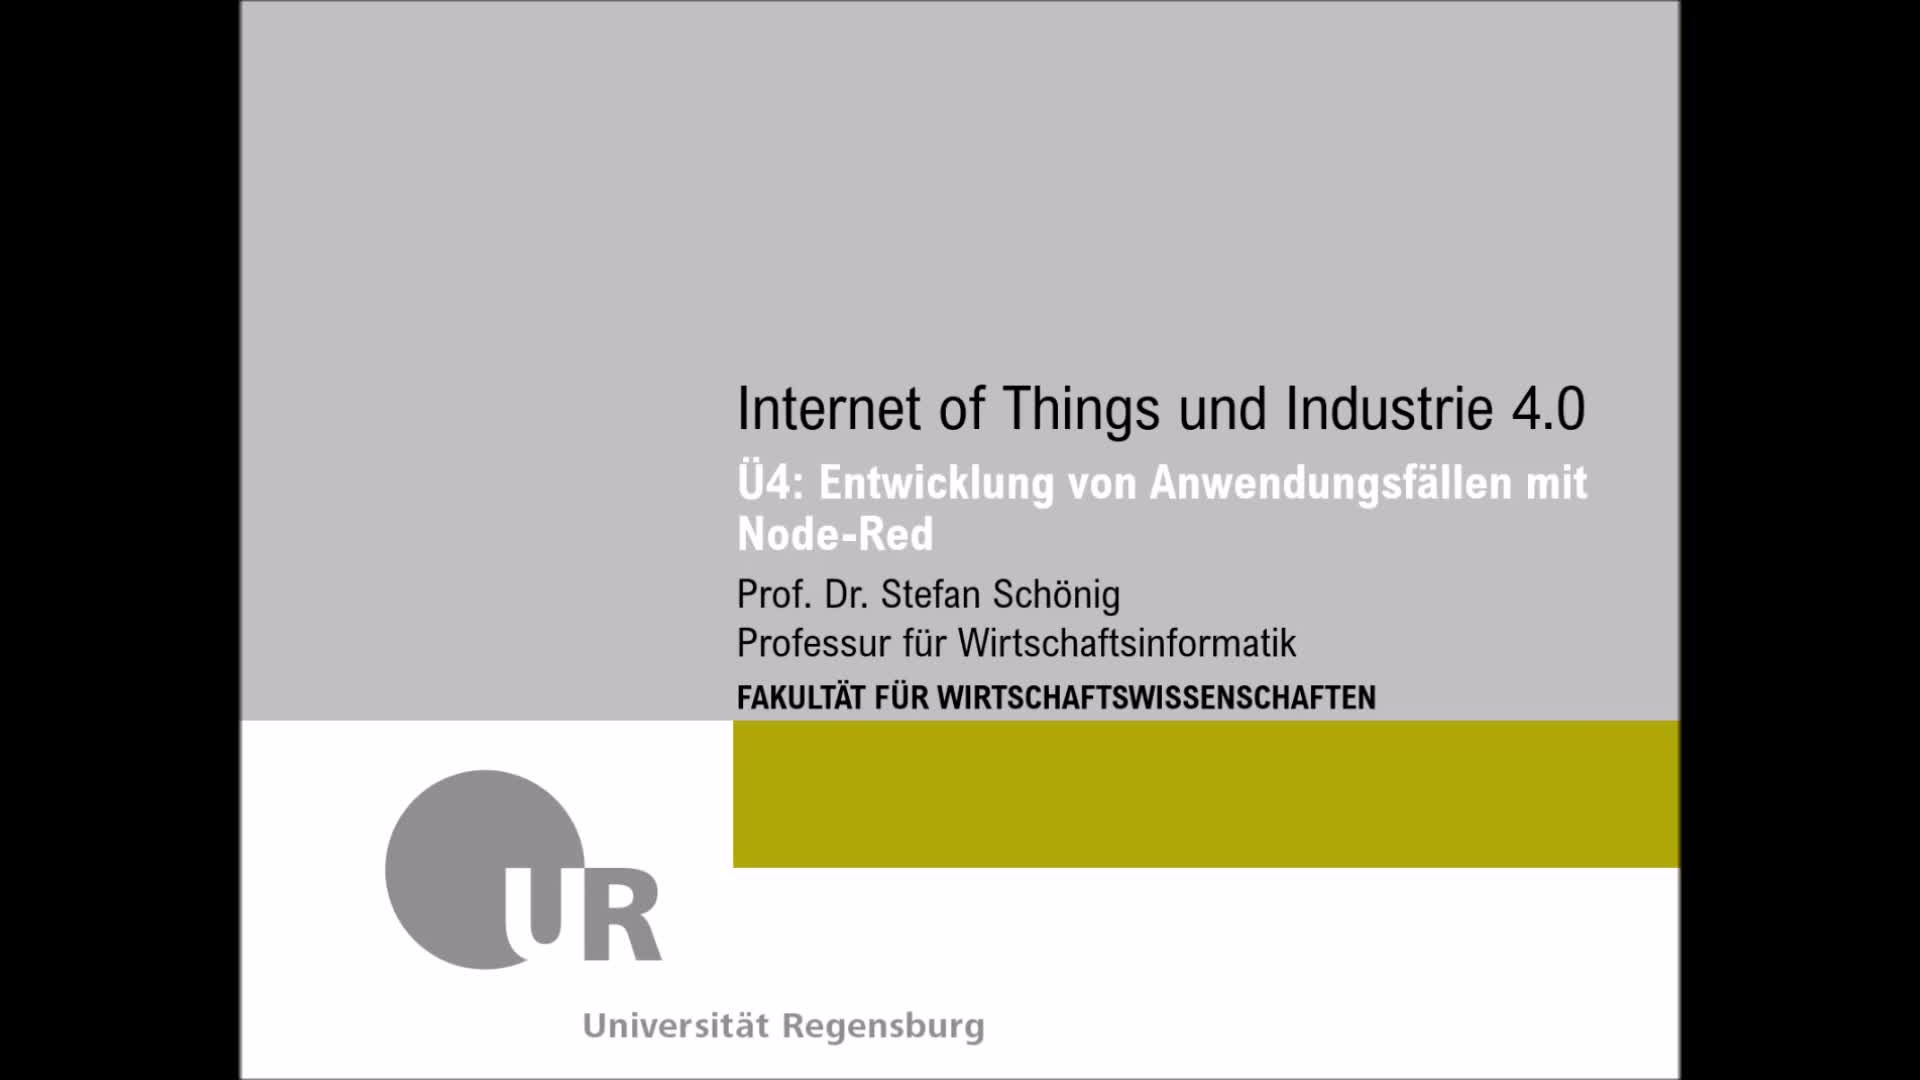 SS 2020 - Internet of Things und Industrie 4.0 - Übung 4 (Praxisübung zu NodeRed)